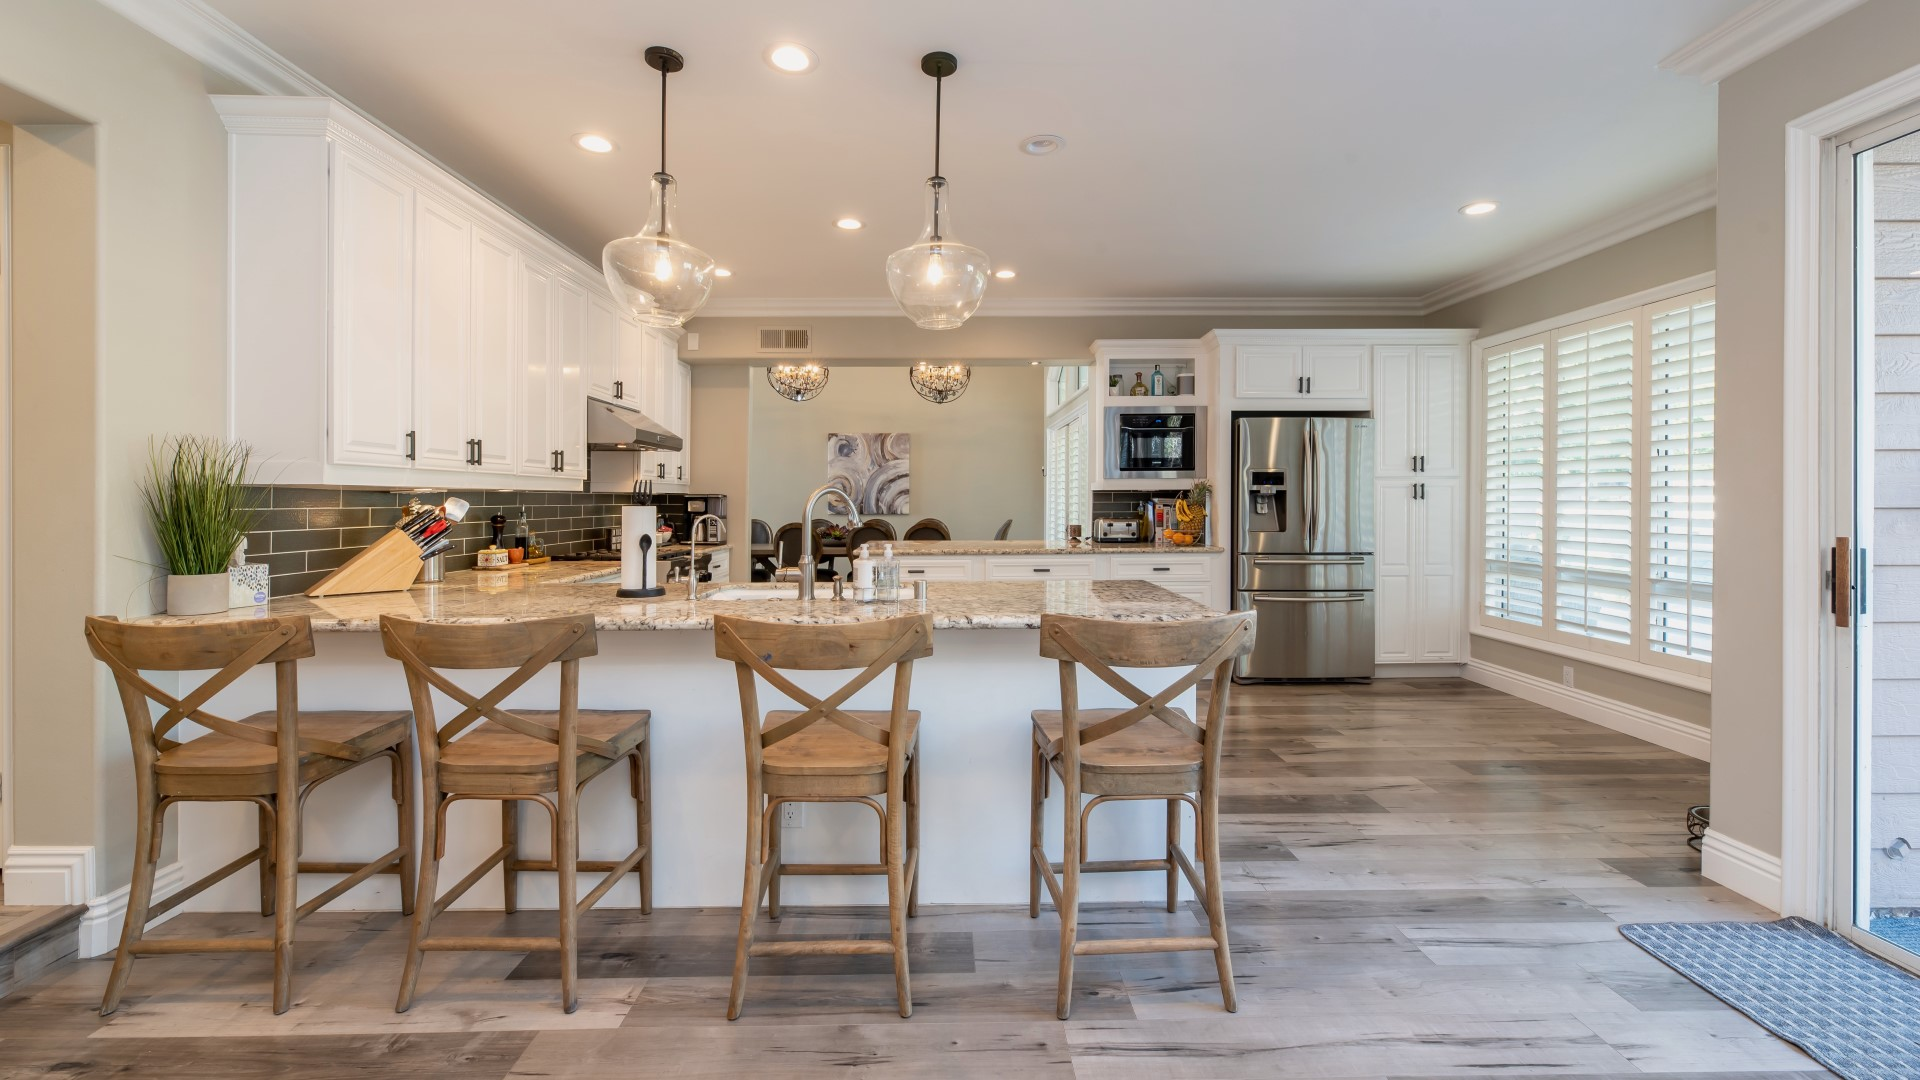 Open concept kitchen with wooden chairs lining bar countertop partition